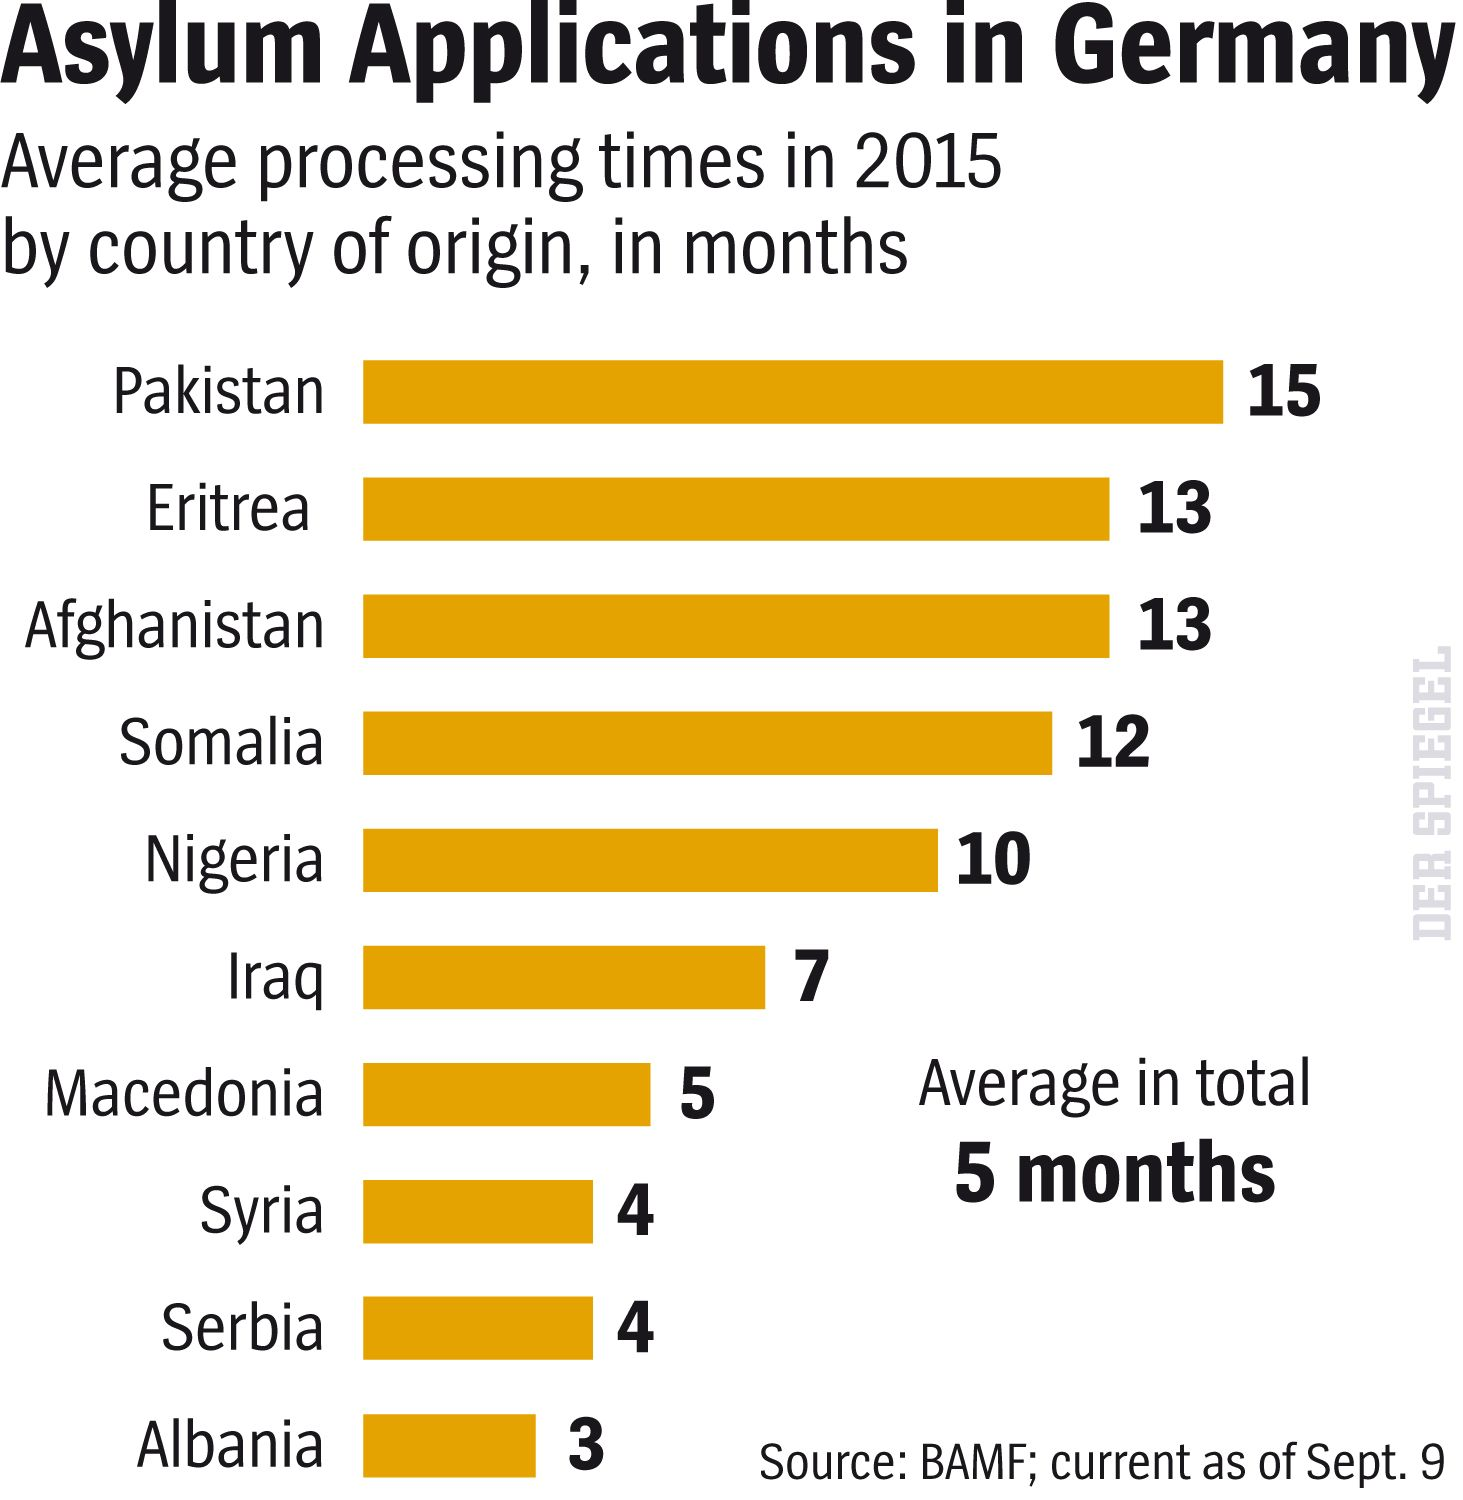 ENGLISH VERSION GRAFIK DER SPIEGEL 43/2015 Seite 35 - Asylum Applications in Germany